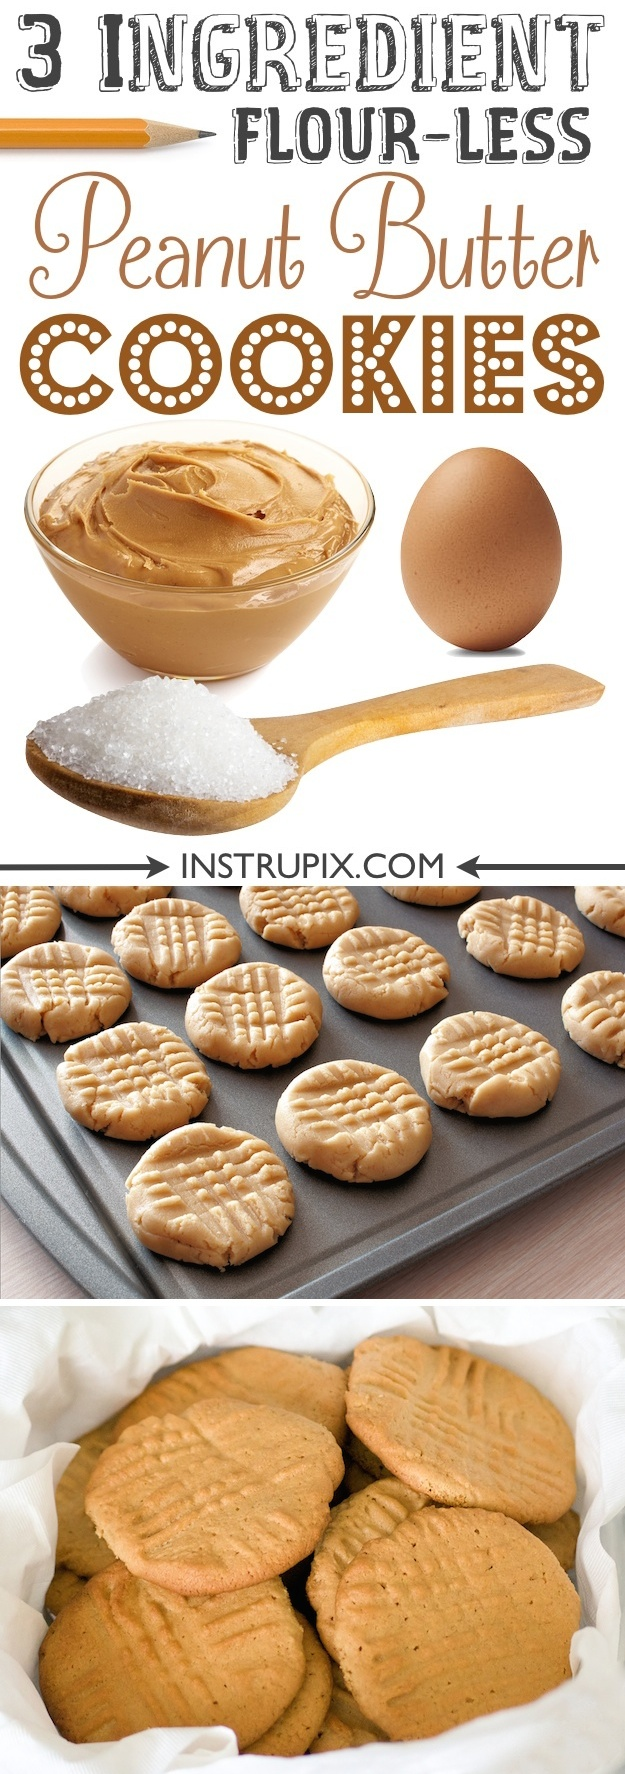 Easy flour-less peanut butter cookies recipe-- just 3 ingredients! Easy peanut butter dessert and treat. Instrupix.com